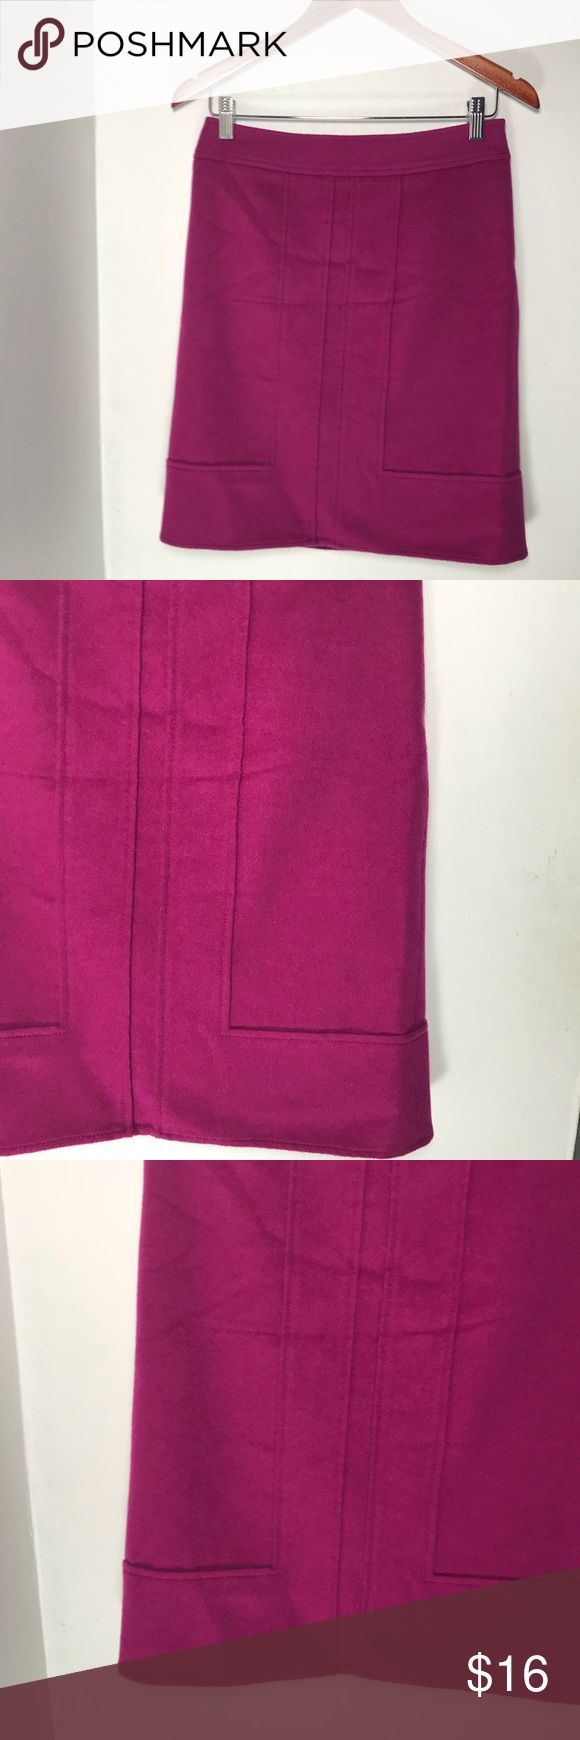 Ann Taylor Fuchsia Pink Pencil Skirt Wool Cashmere Item is in good condition no visible signs of wear and tear. Length of the skirt is 21.5 inches. Ann Taylor Skirts Pencil